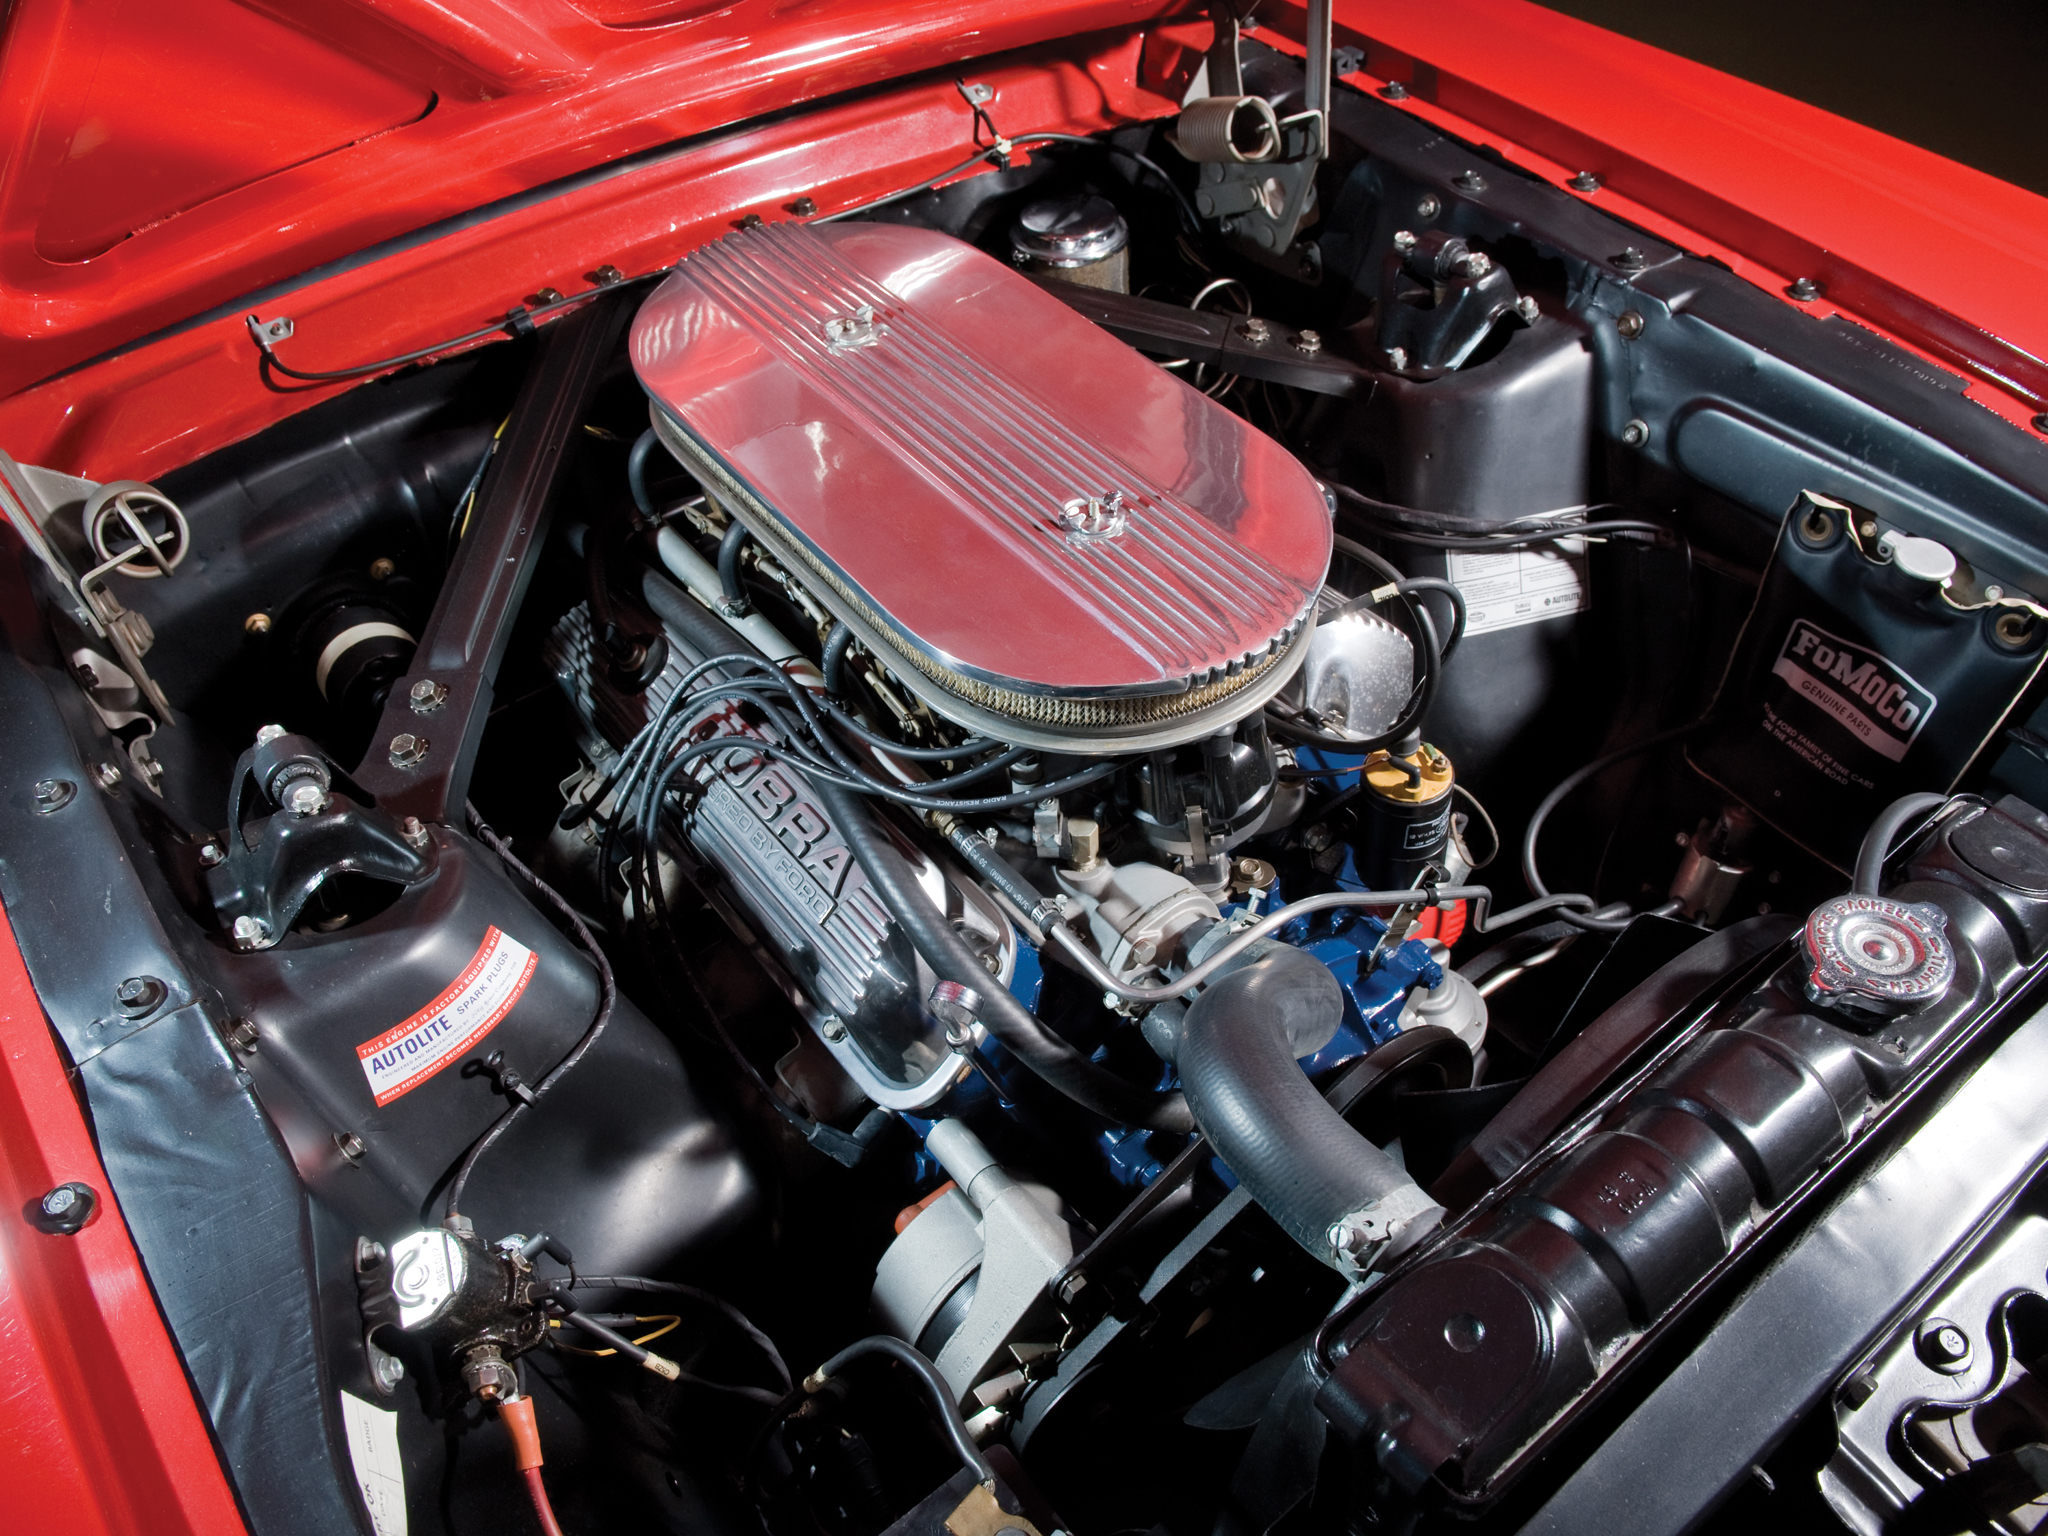 1966 ford mustang g t fastback 289 muscle classic engine for Ford mustang motor sizes